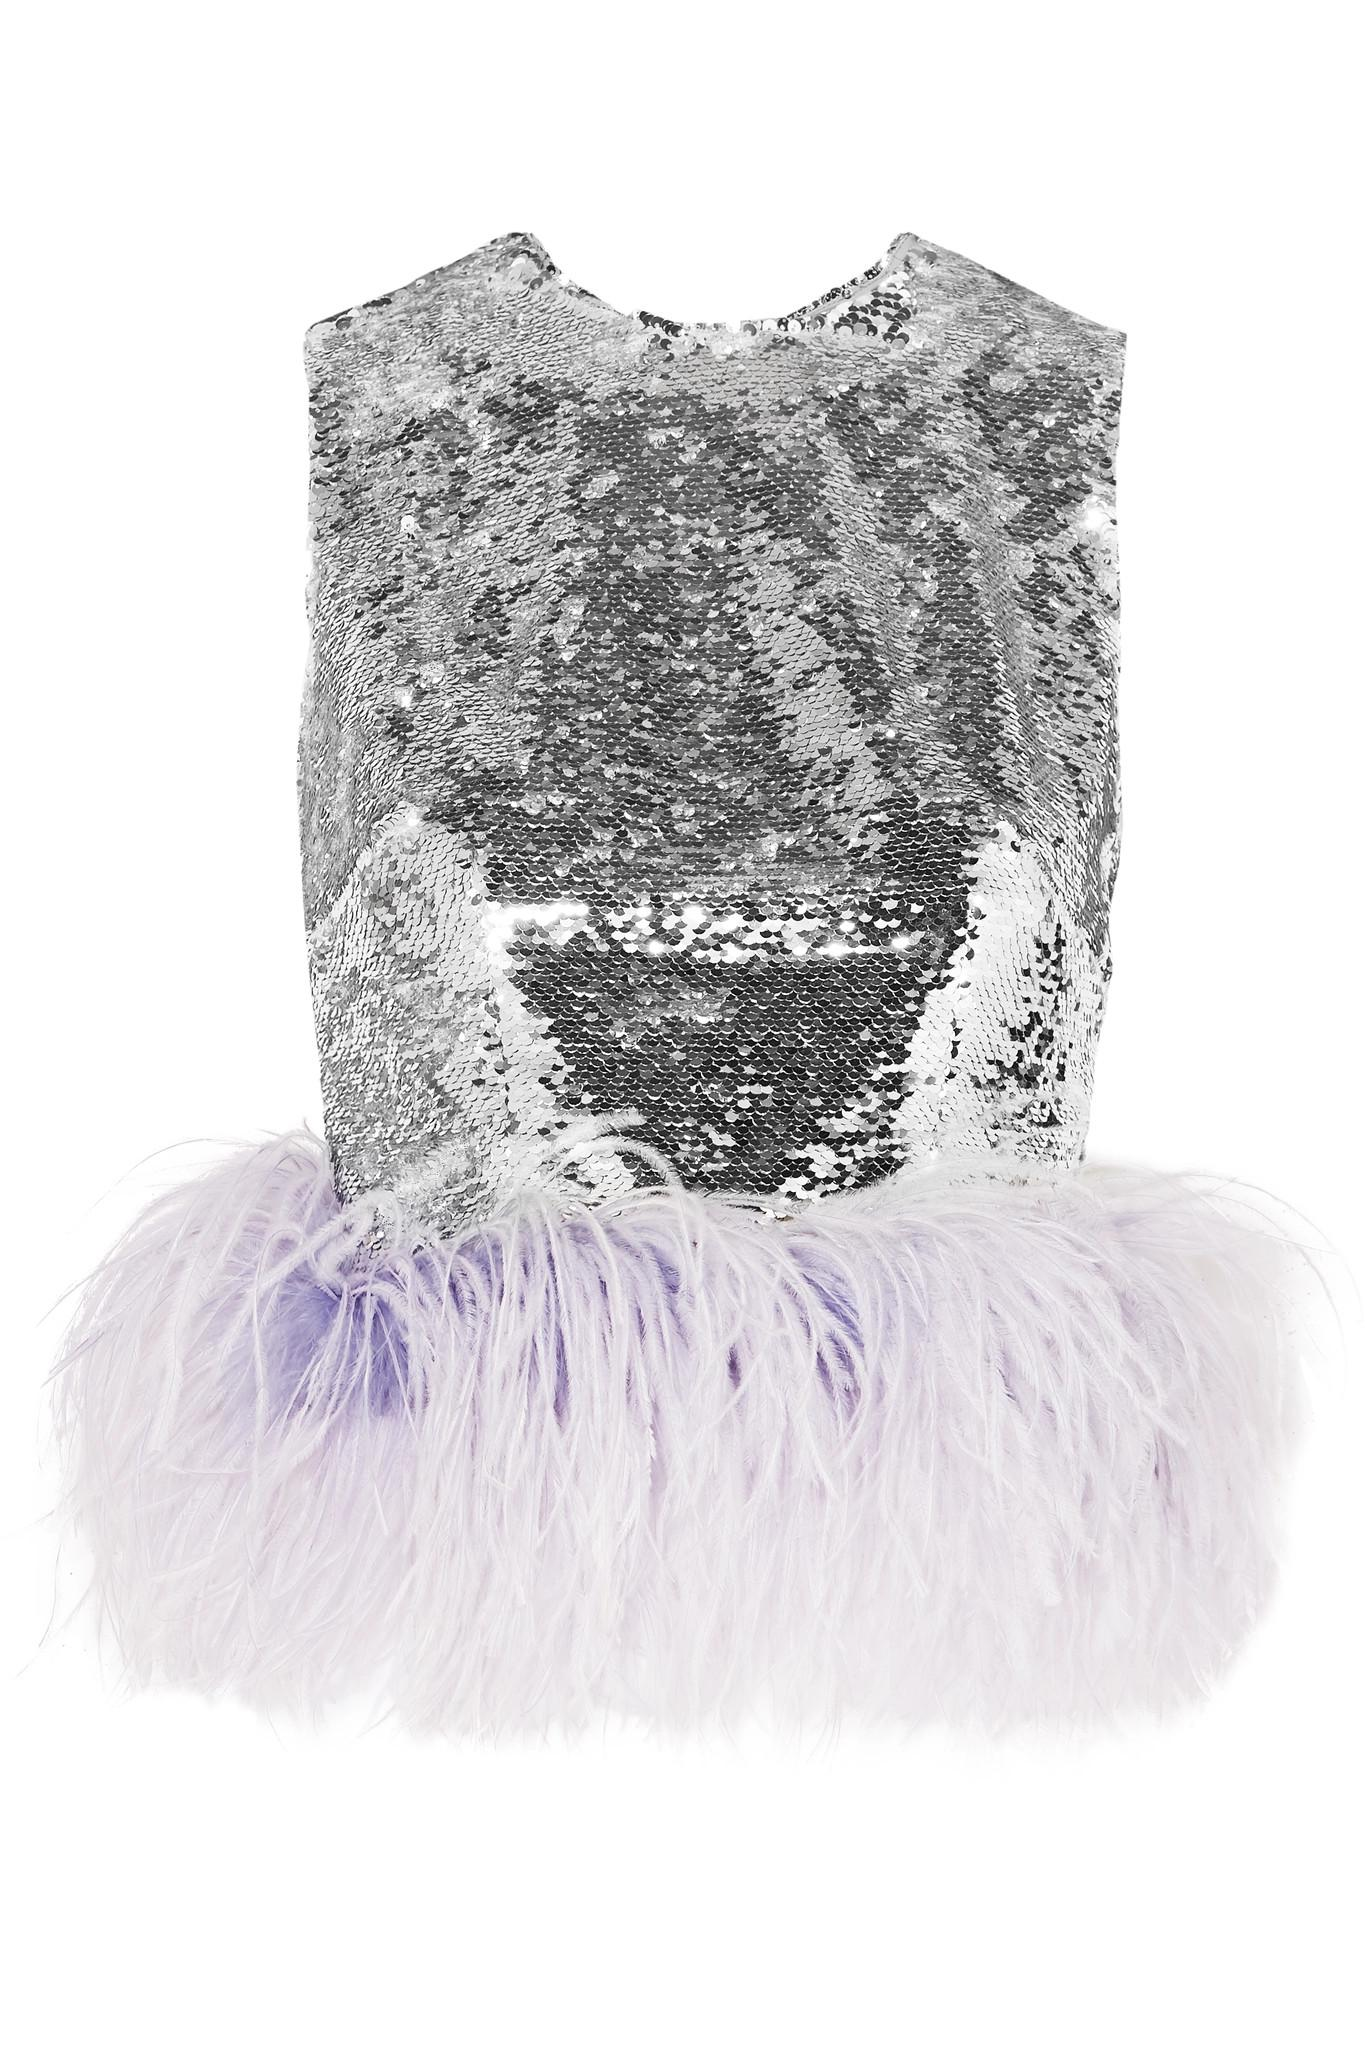 bfc782be4ae60 16Arlington Feather-trimmed Sequined Tulle Top in Metallic - Lyst